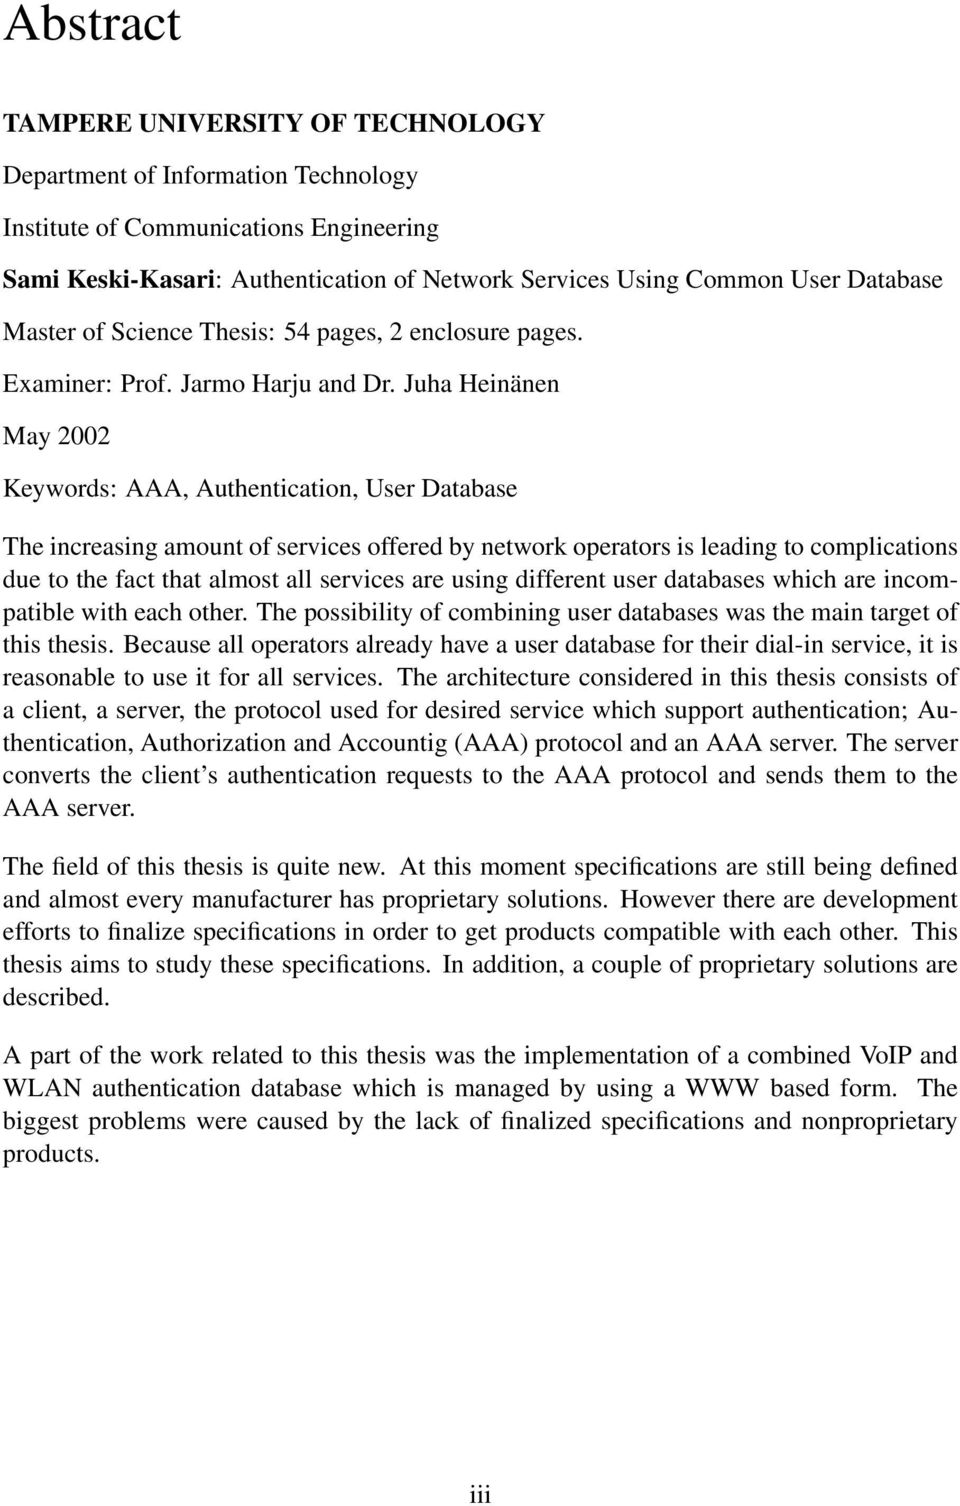 Juha Heinänen May 2002 Keywords: AAA, Authentication, User Database The increasing amount of services offered by network operators is leading to complications due to the fact that almost all services